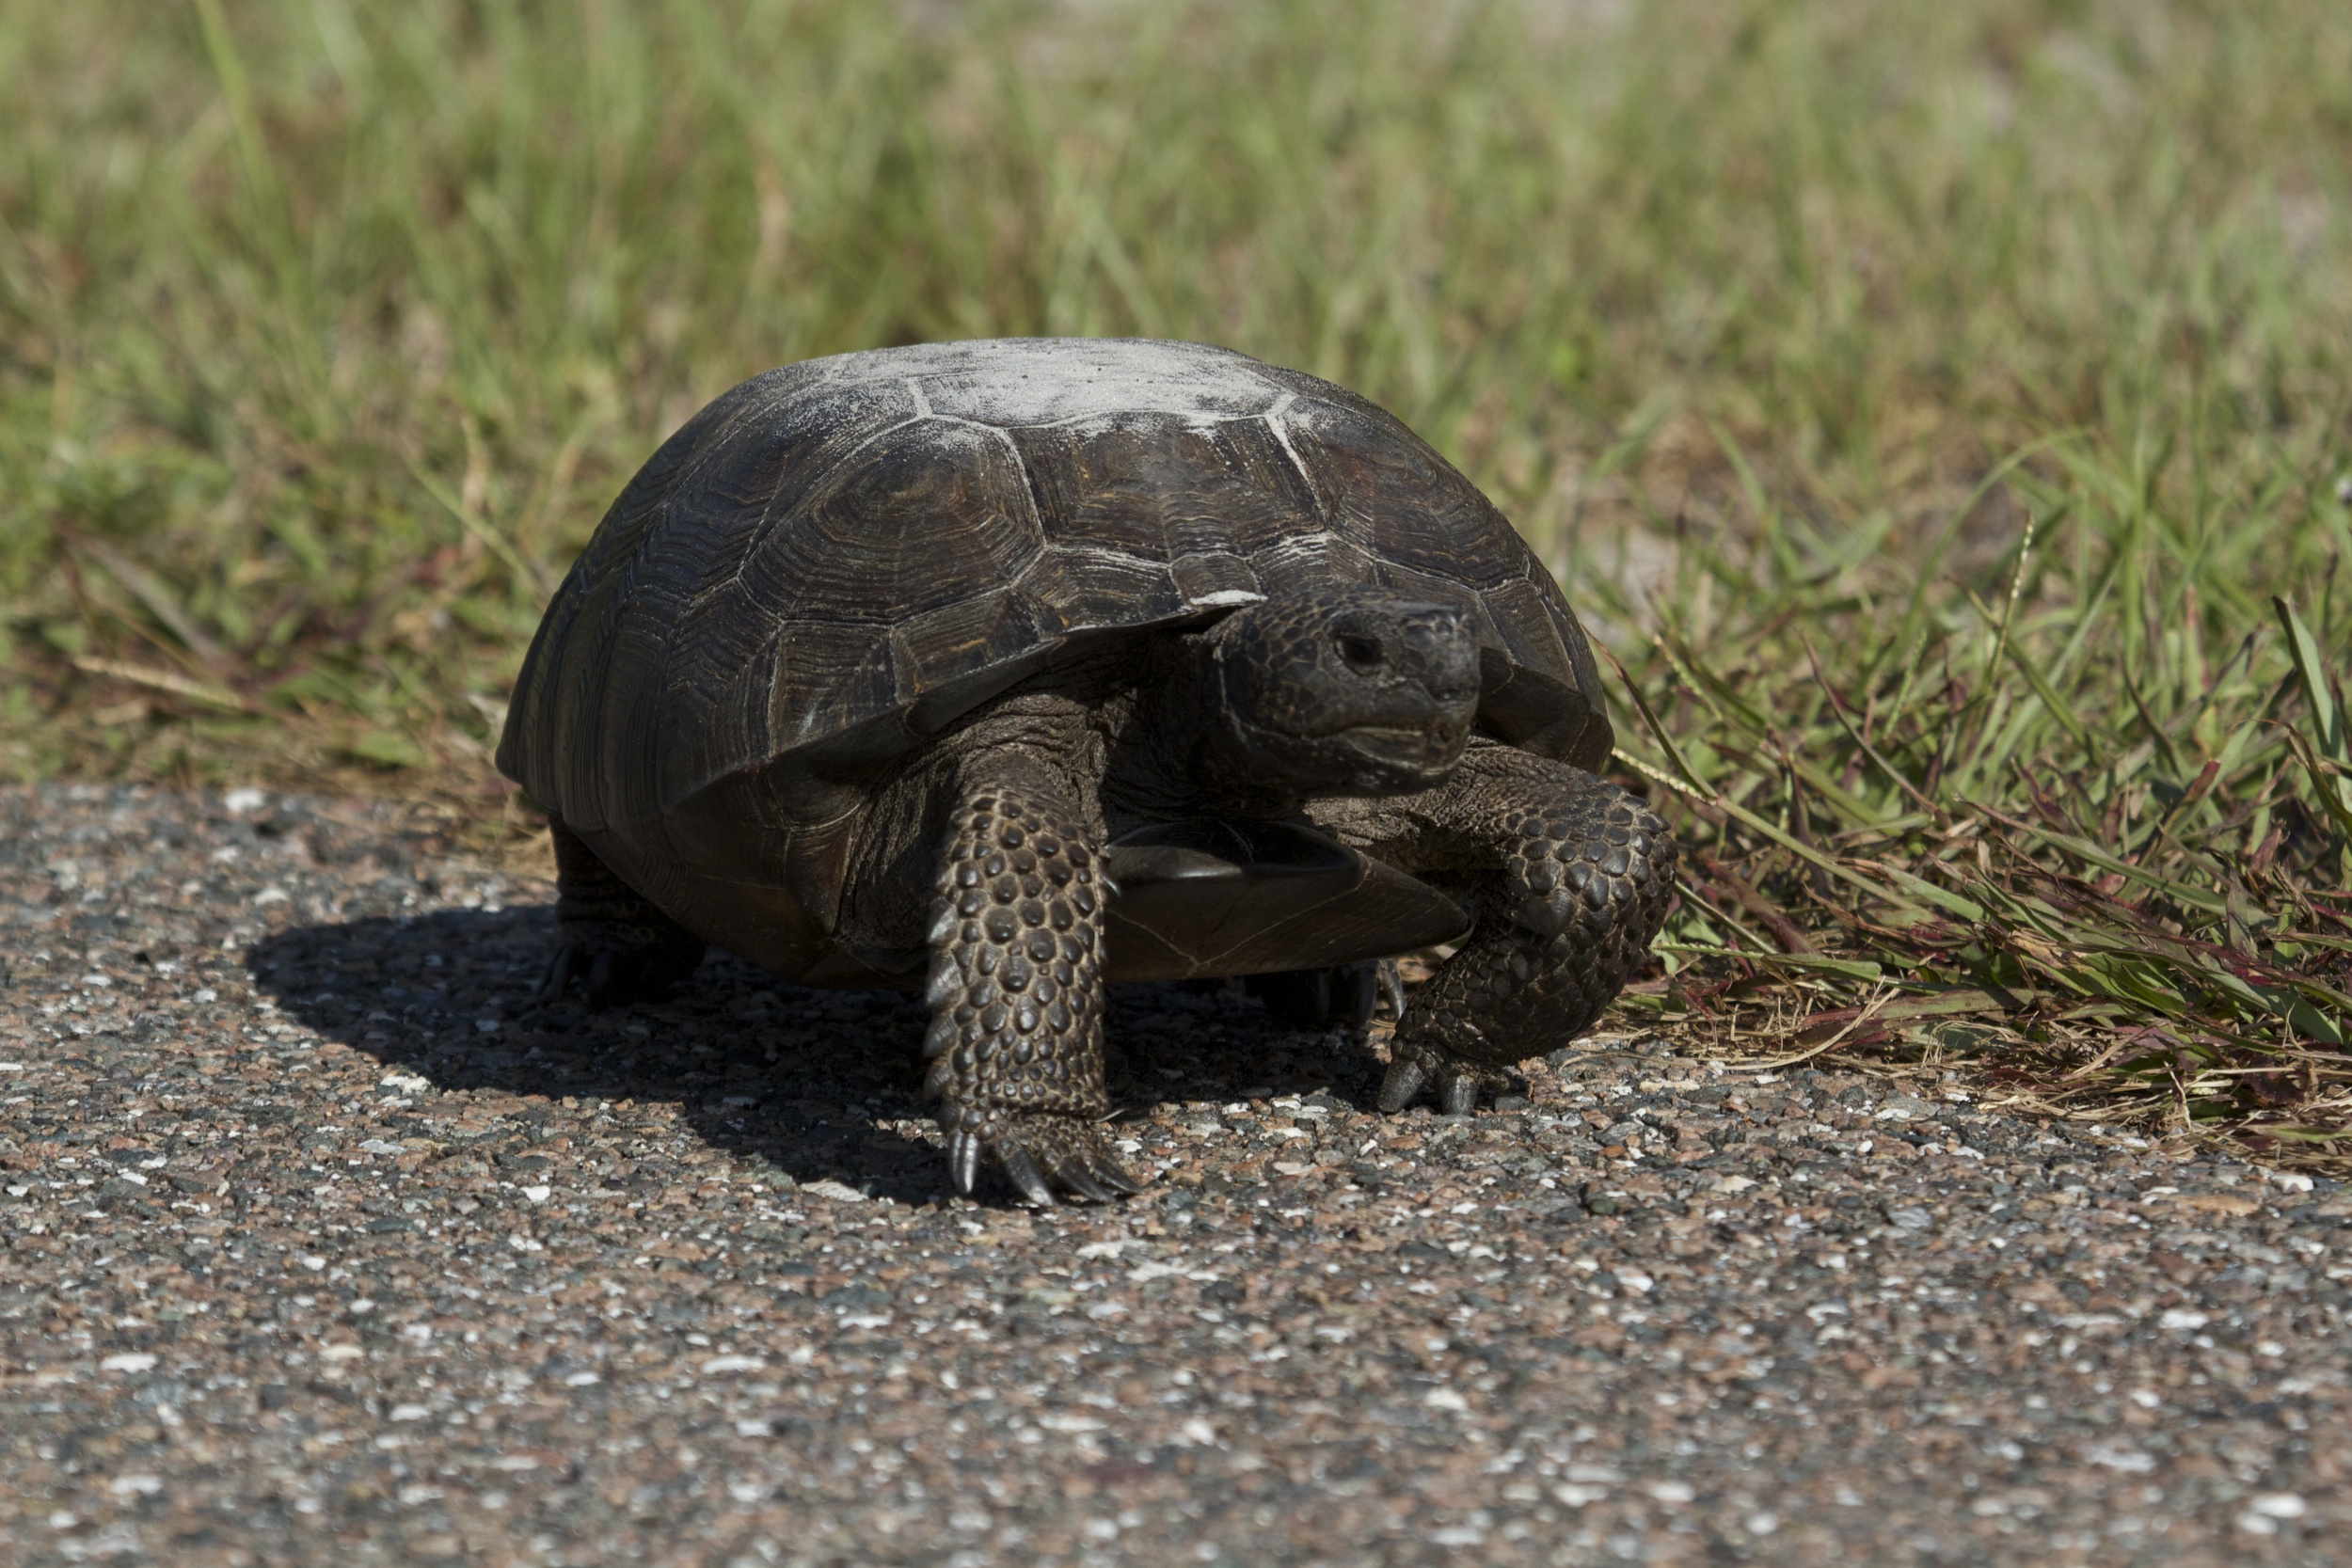 So why did the Gopher Tortoise cross the road? To stop traffic I think.